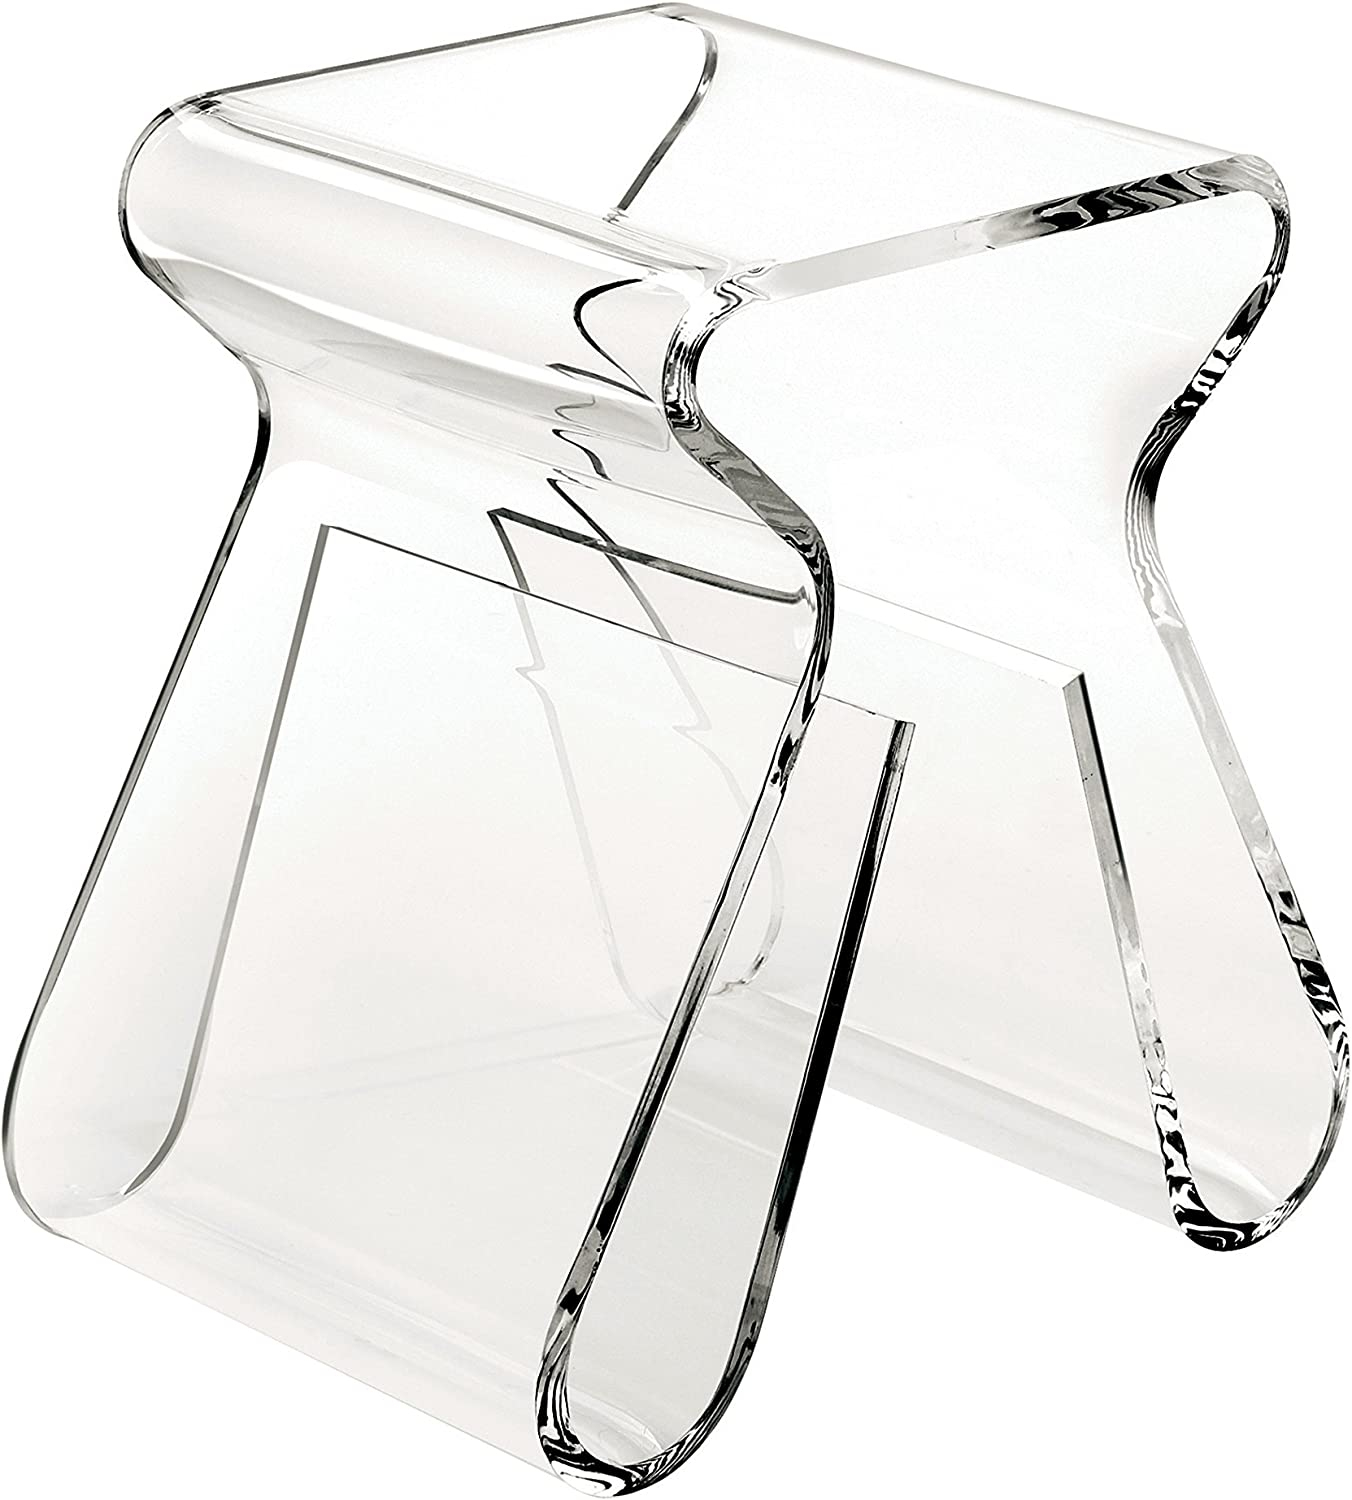 Umbra Magino, Acrylic Side Table, End Table, Stool with Storage, Modern Magazine Rack, Clear